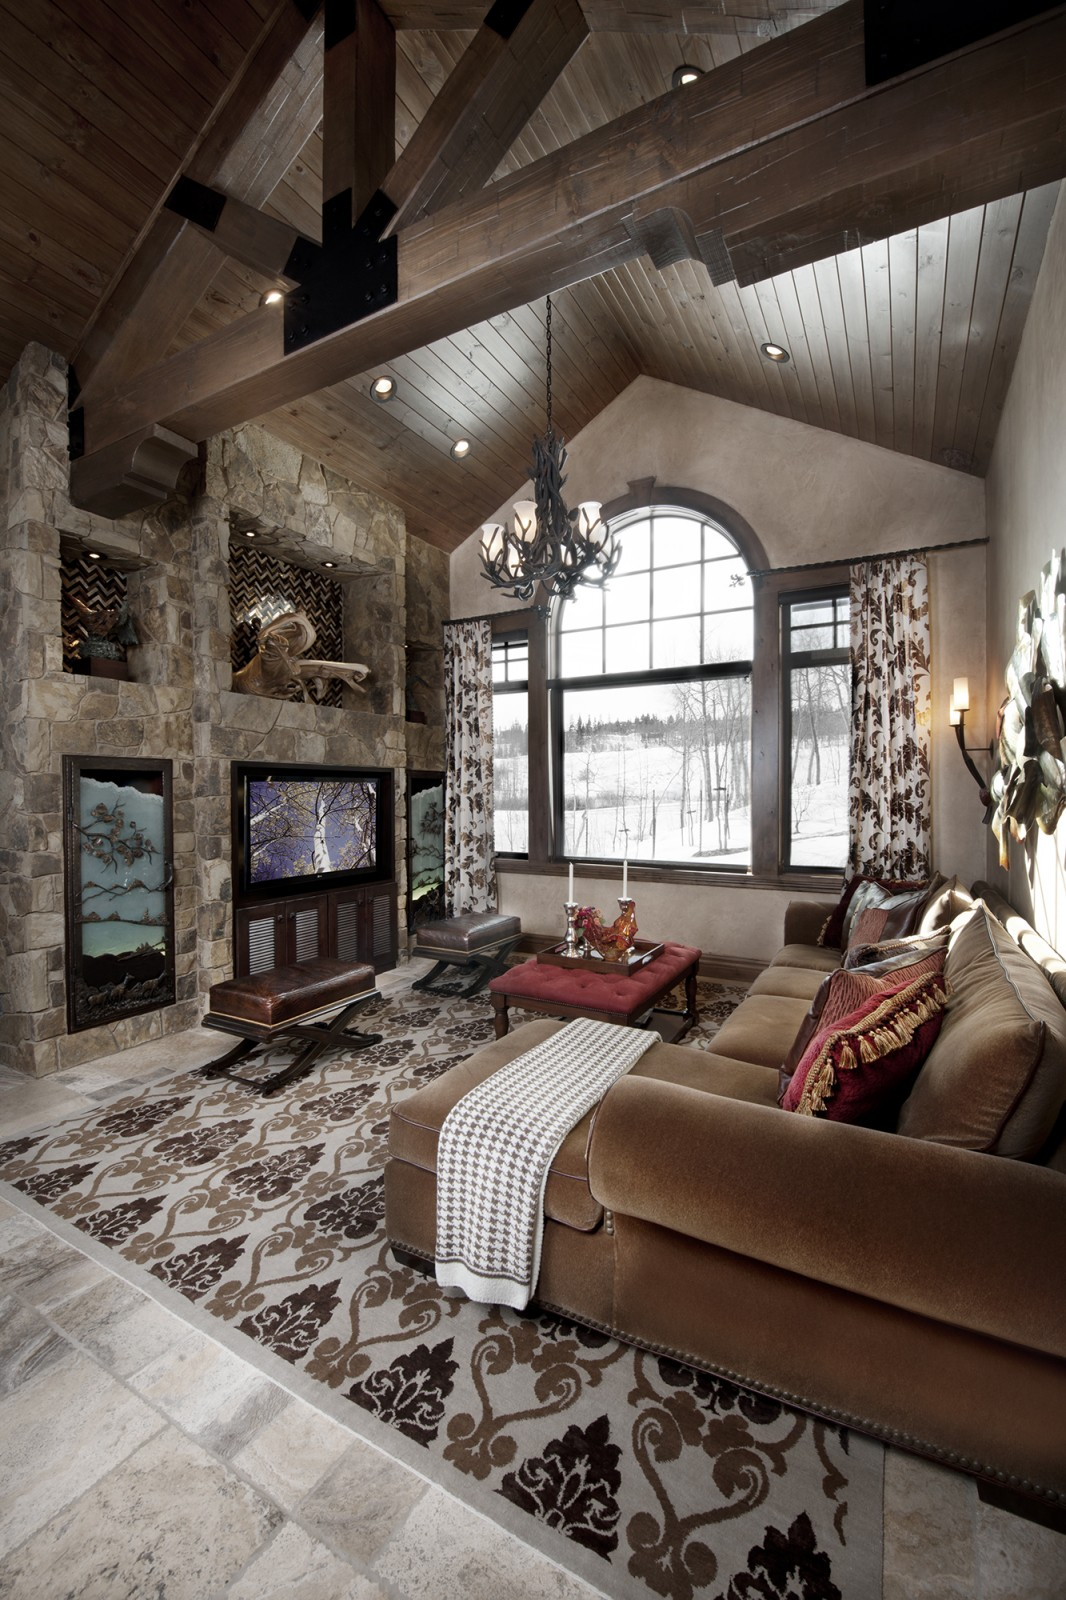 Rustic design ideas canadian log homes - House interior design pictures living room ...